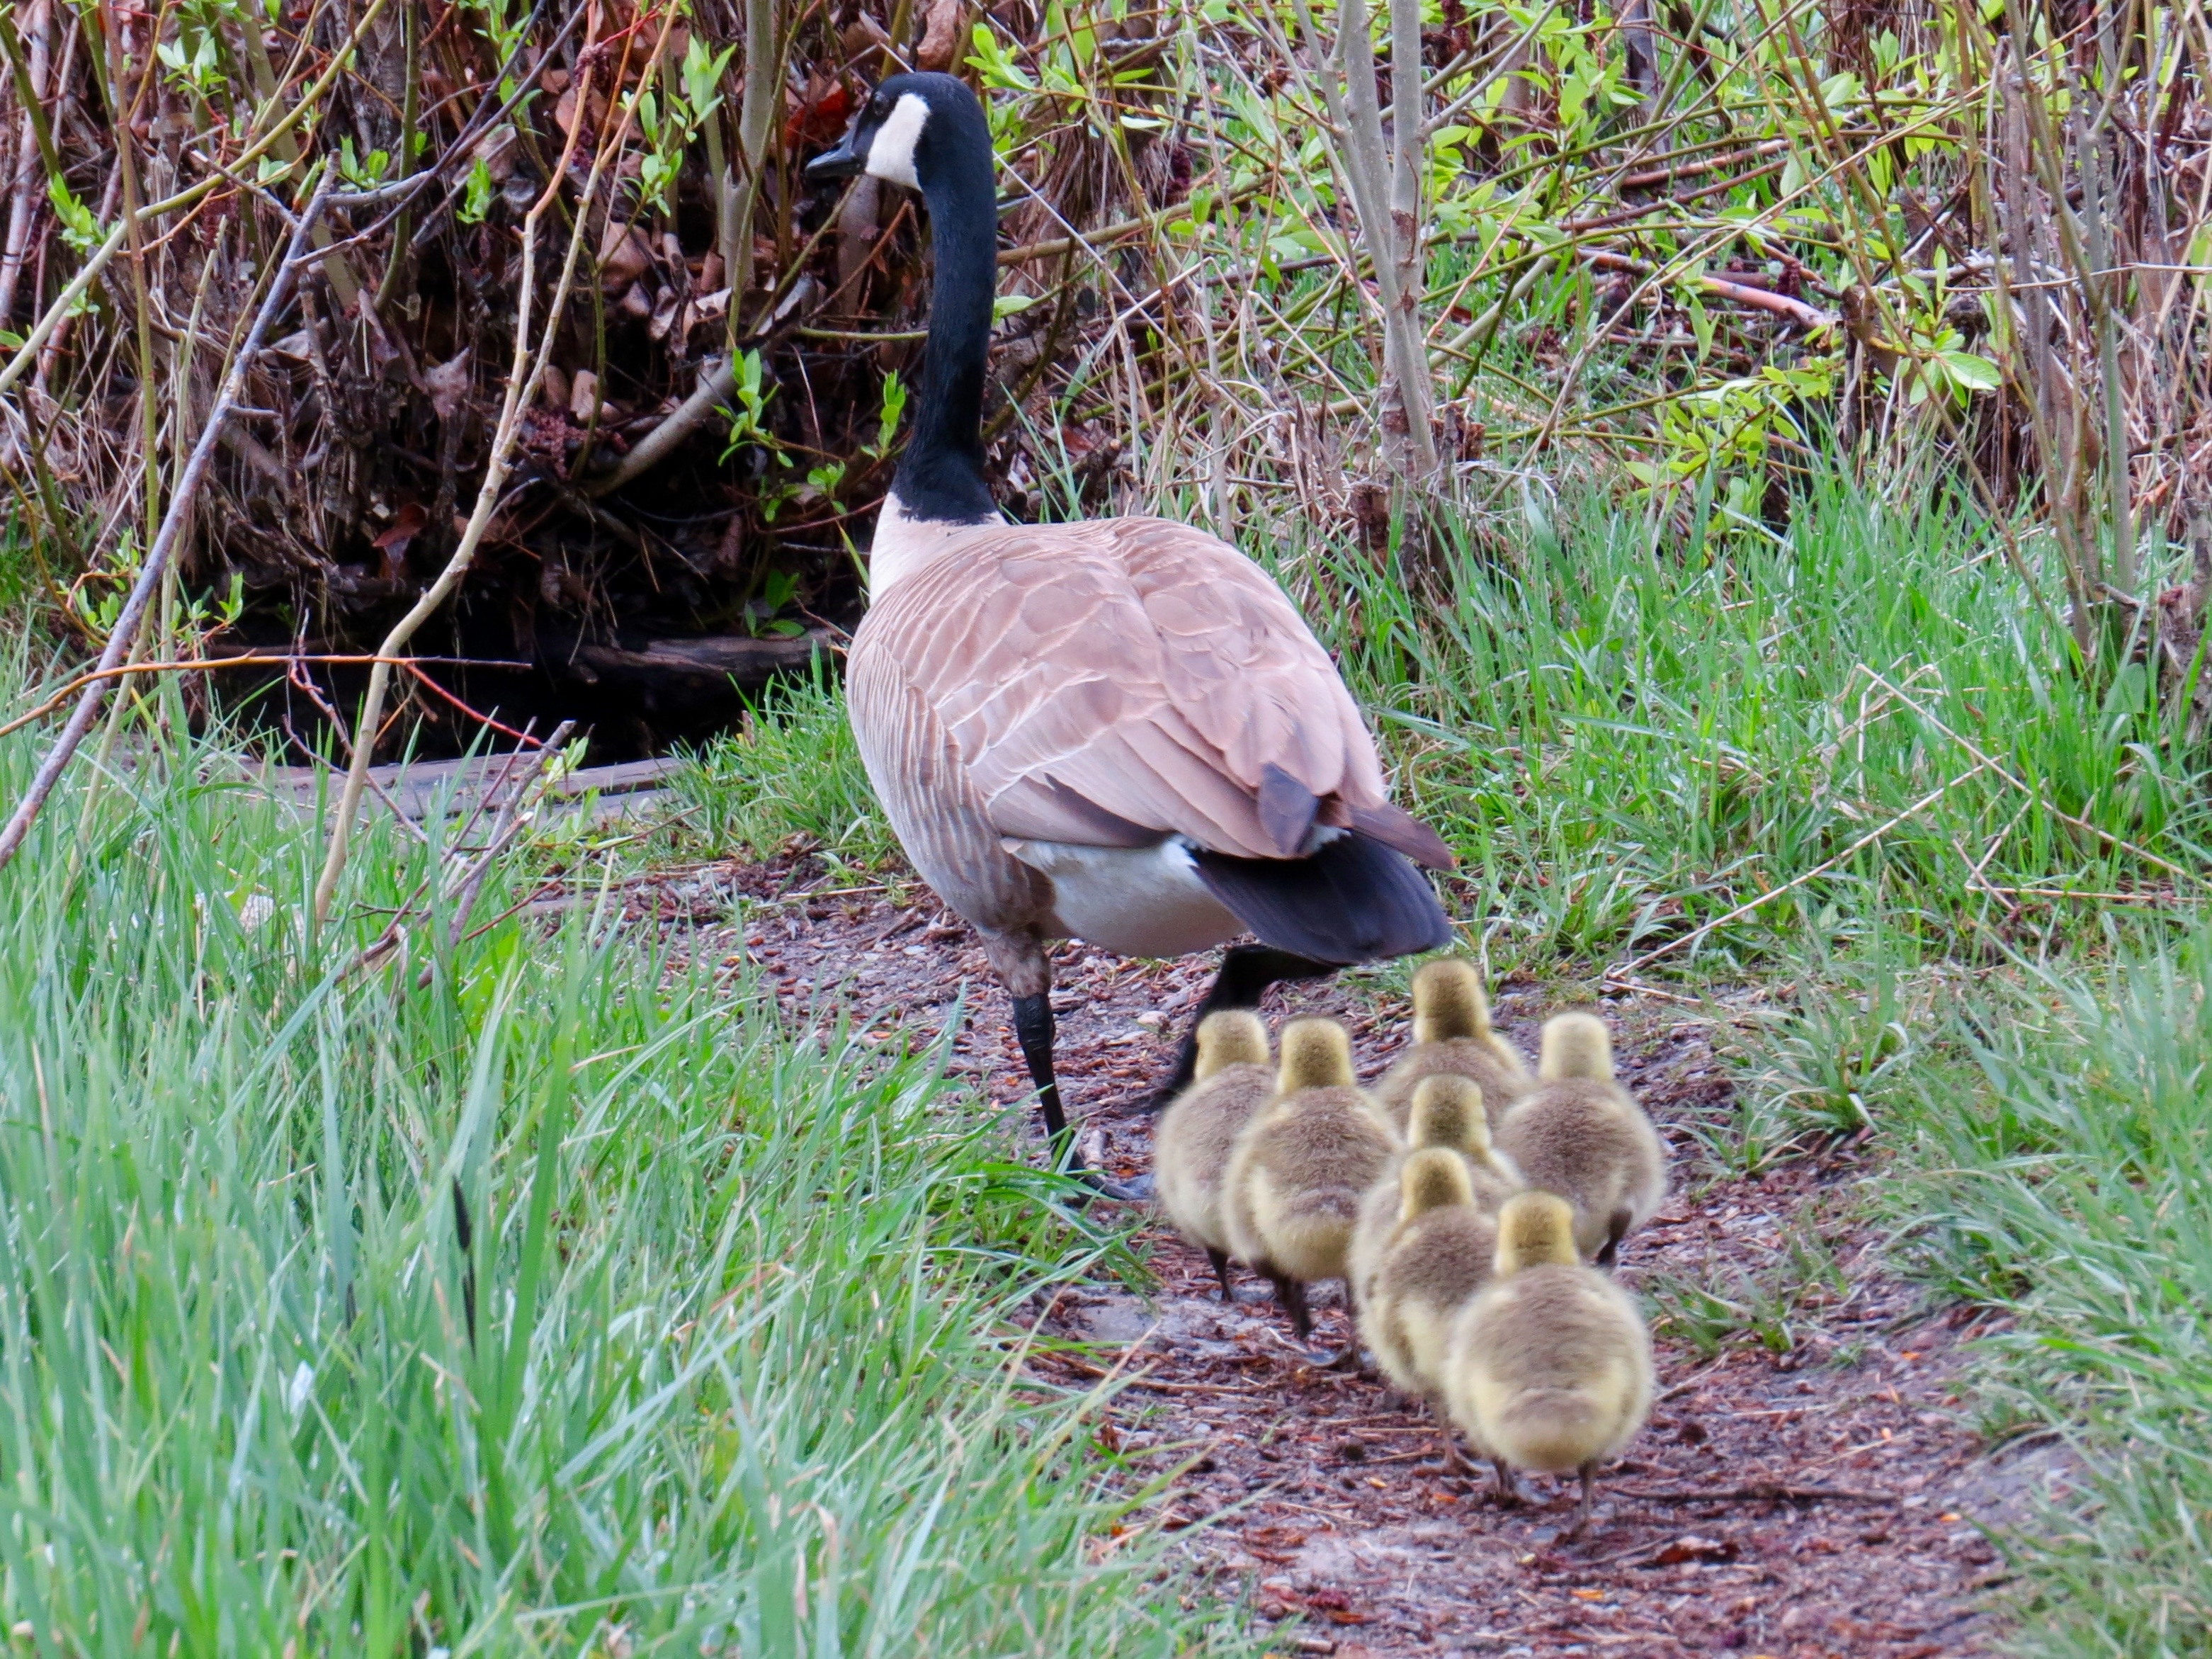 It's Springtime in the Rockies and time for babies. Mama Canada Goose is taking loving care of her 7 little goslings at the Aspen Center for Environmental Studies.